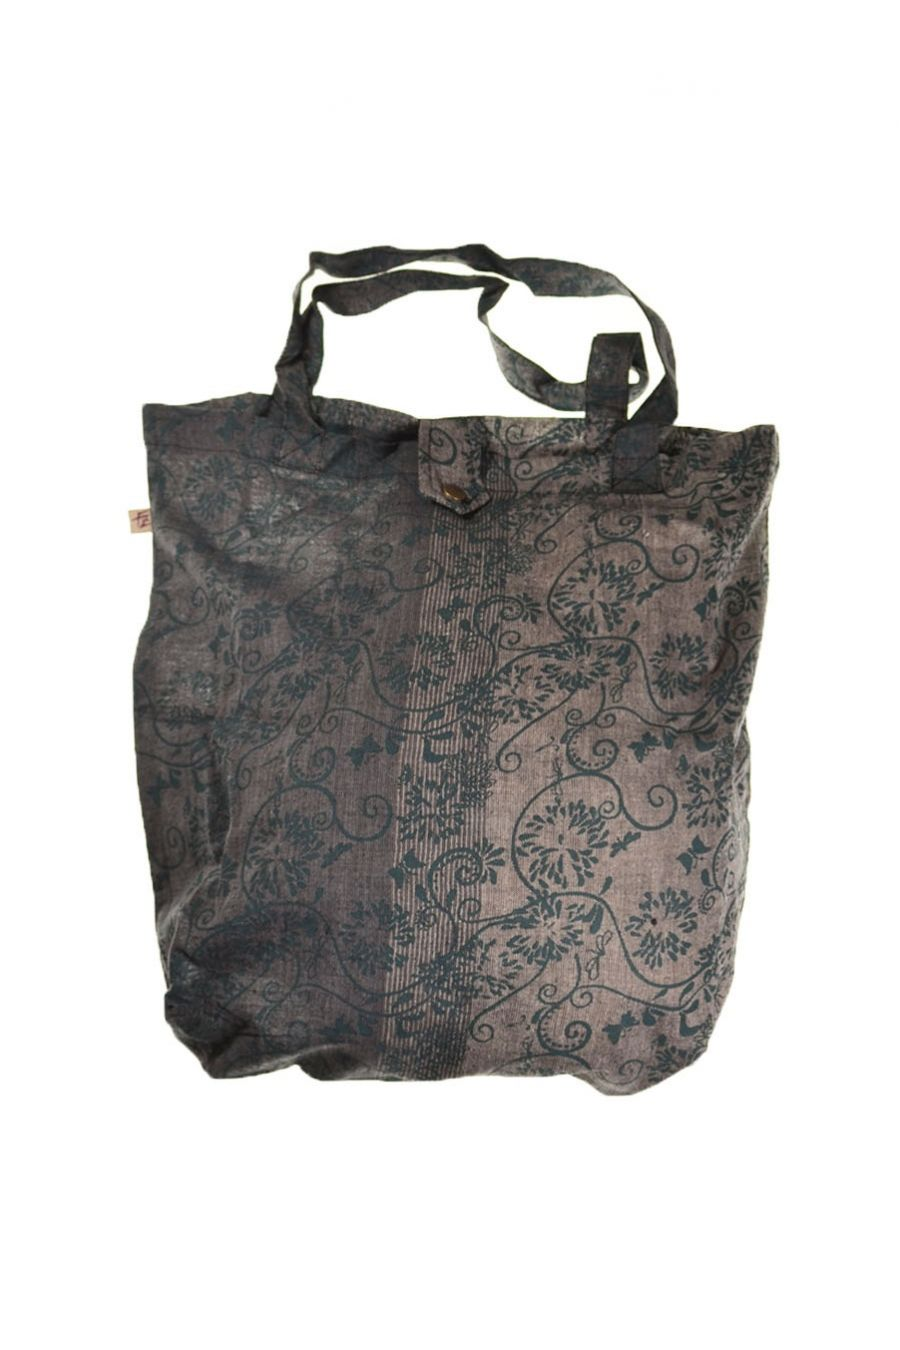 fzb12a sac tote bag coton imprim ethnic babachic gris noir. Black Bedroom Furniture Sets. Home Design Ideas